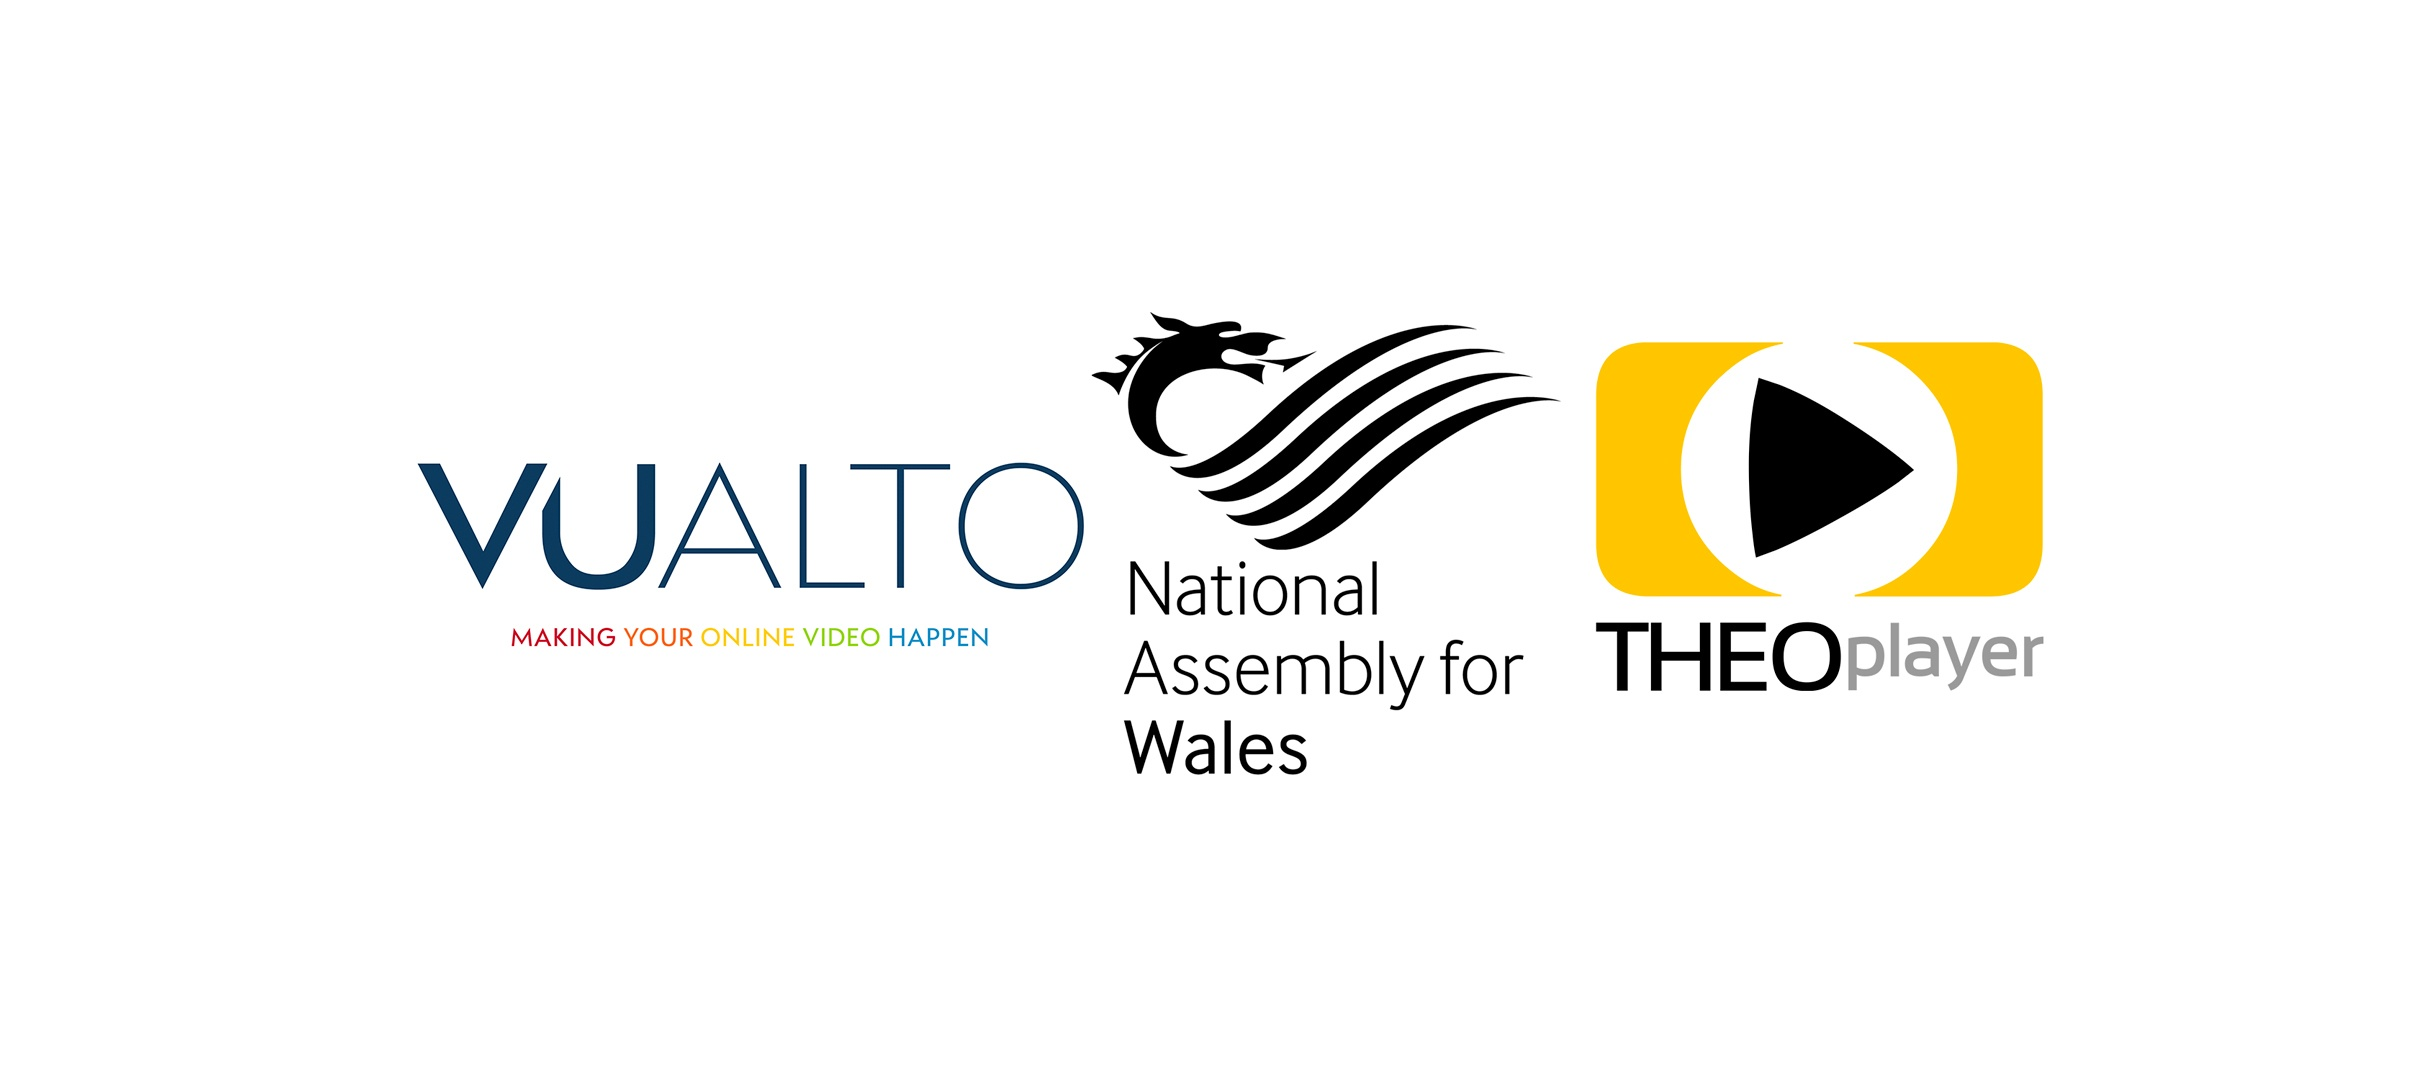 Case Study: The National Assembly of Wales